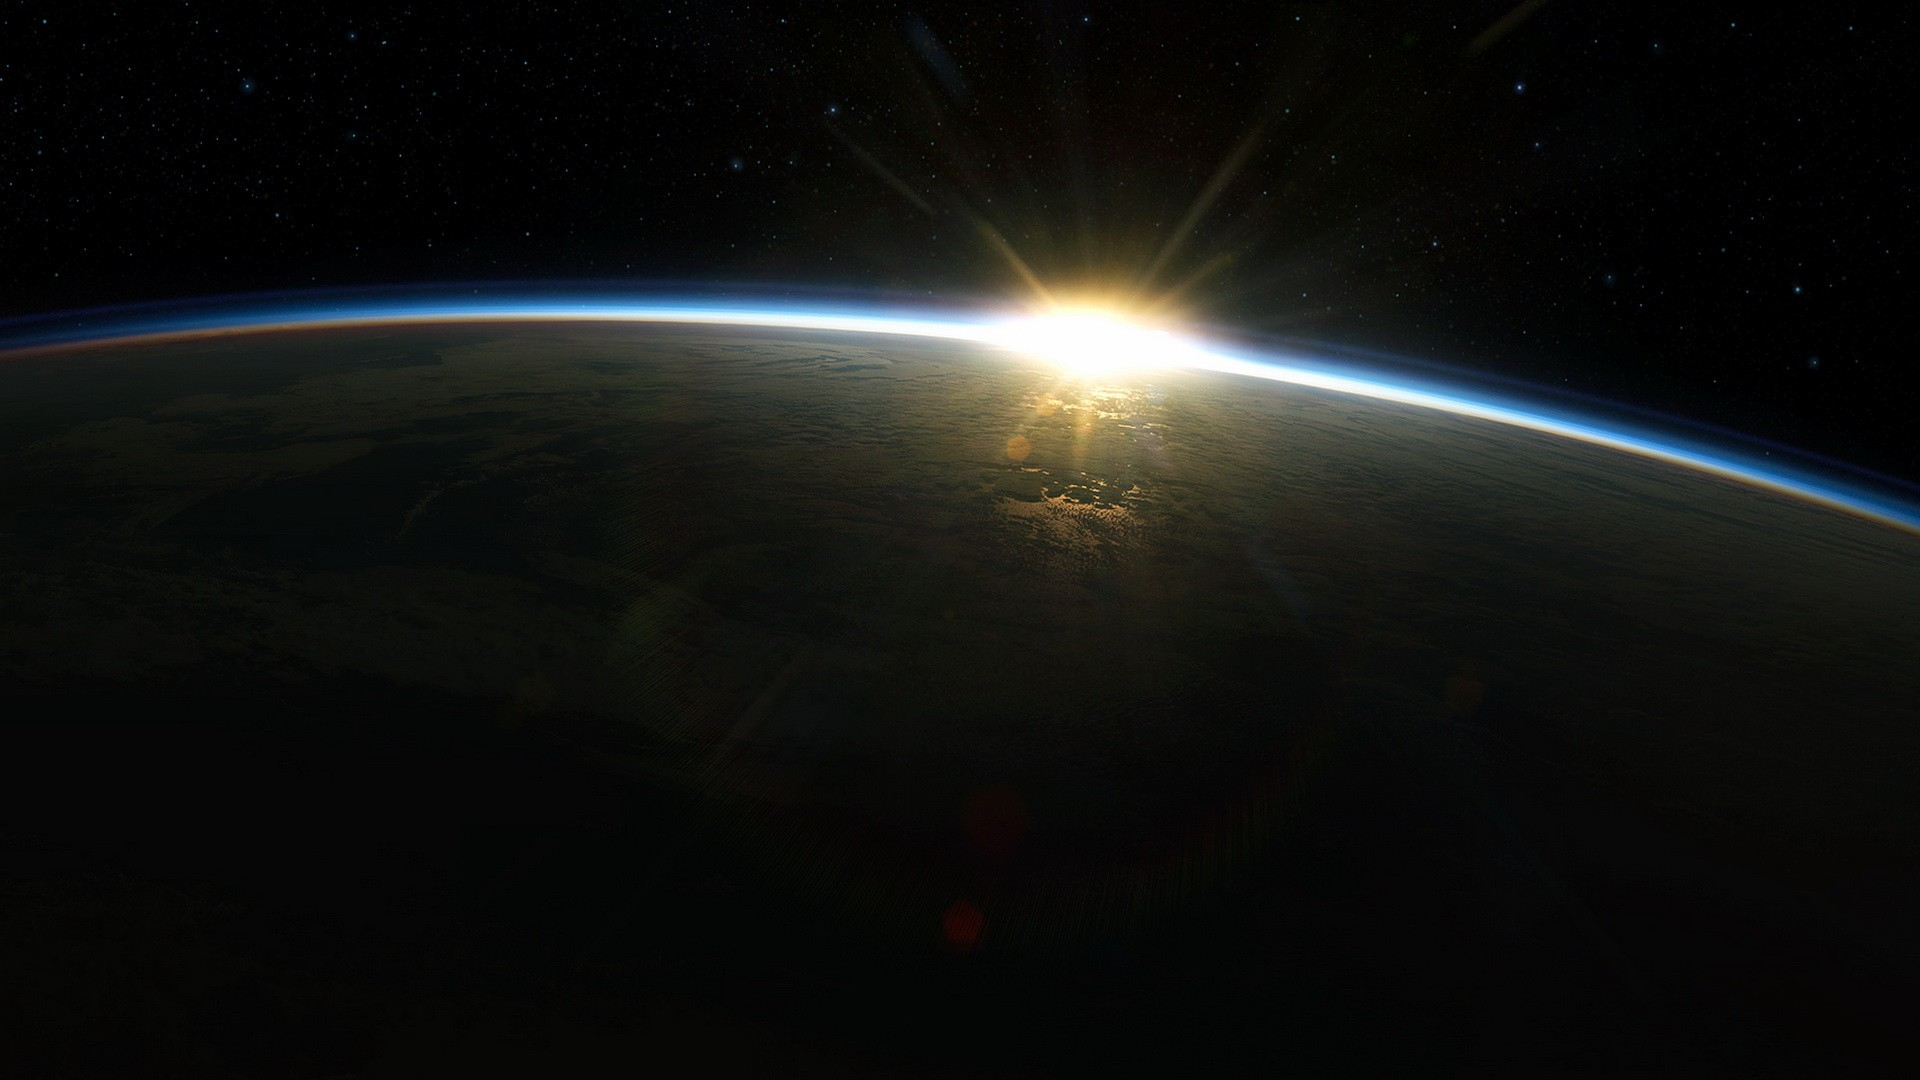 Sunrise Sun outer space Earth atmosphere wallpaper 1920x1080 61179 1920x1080